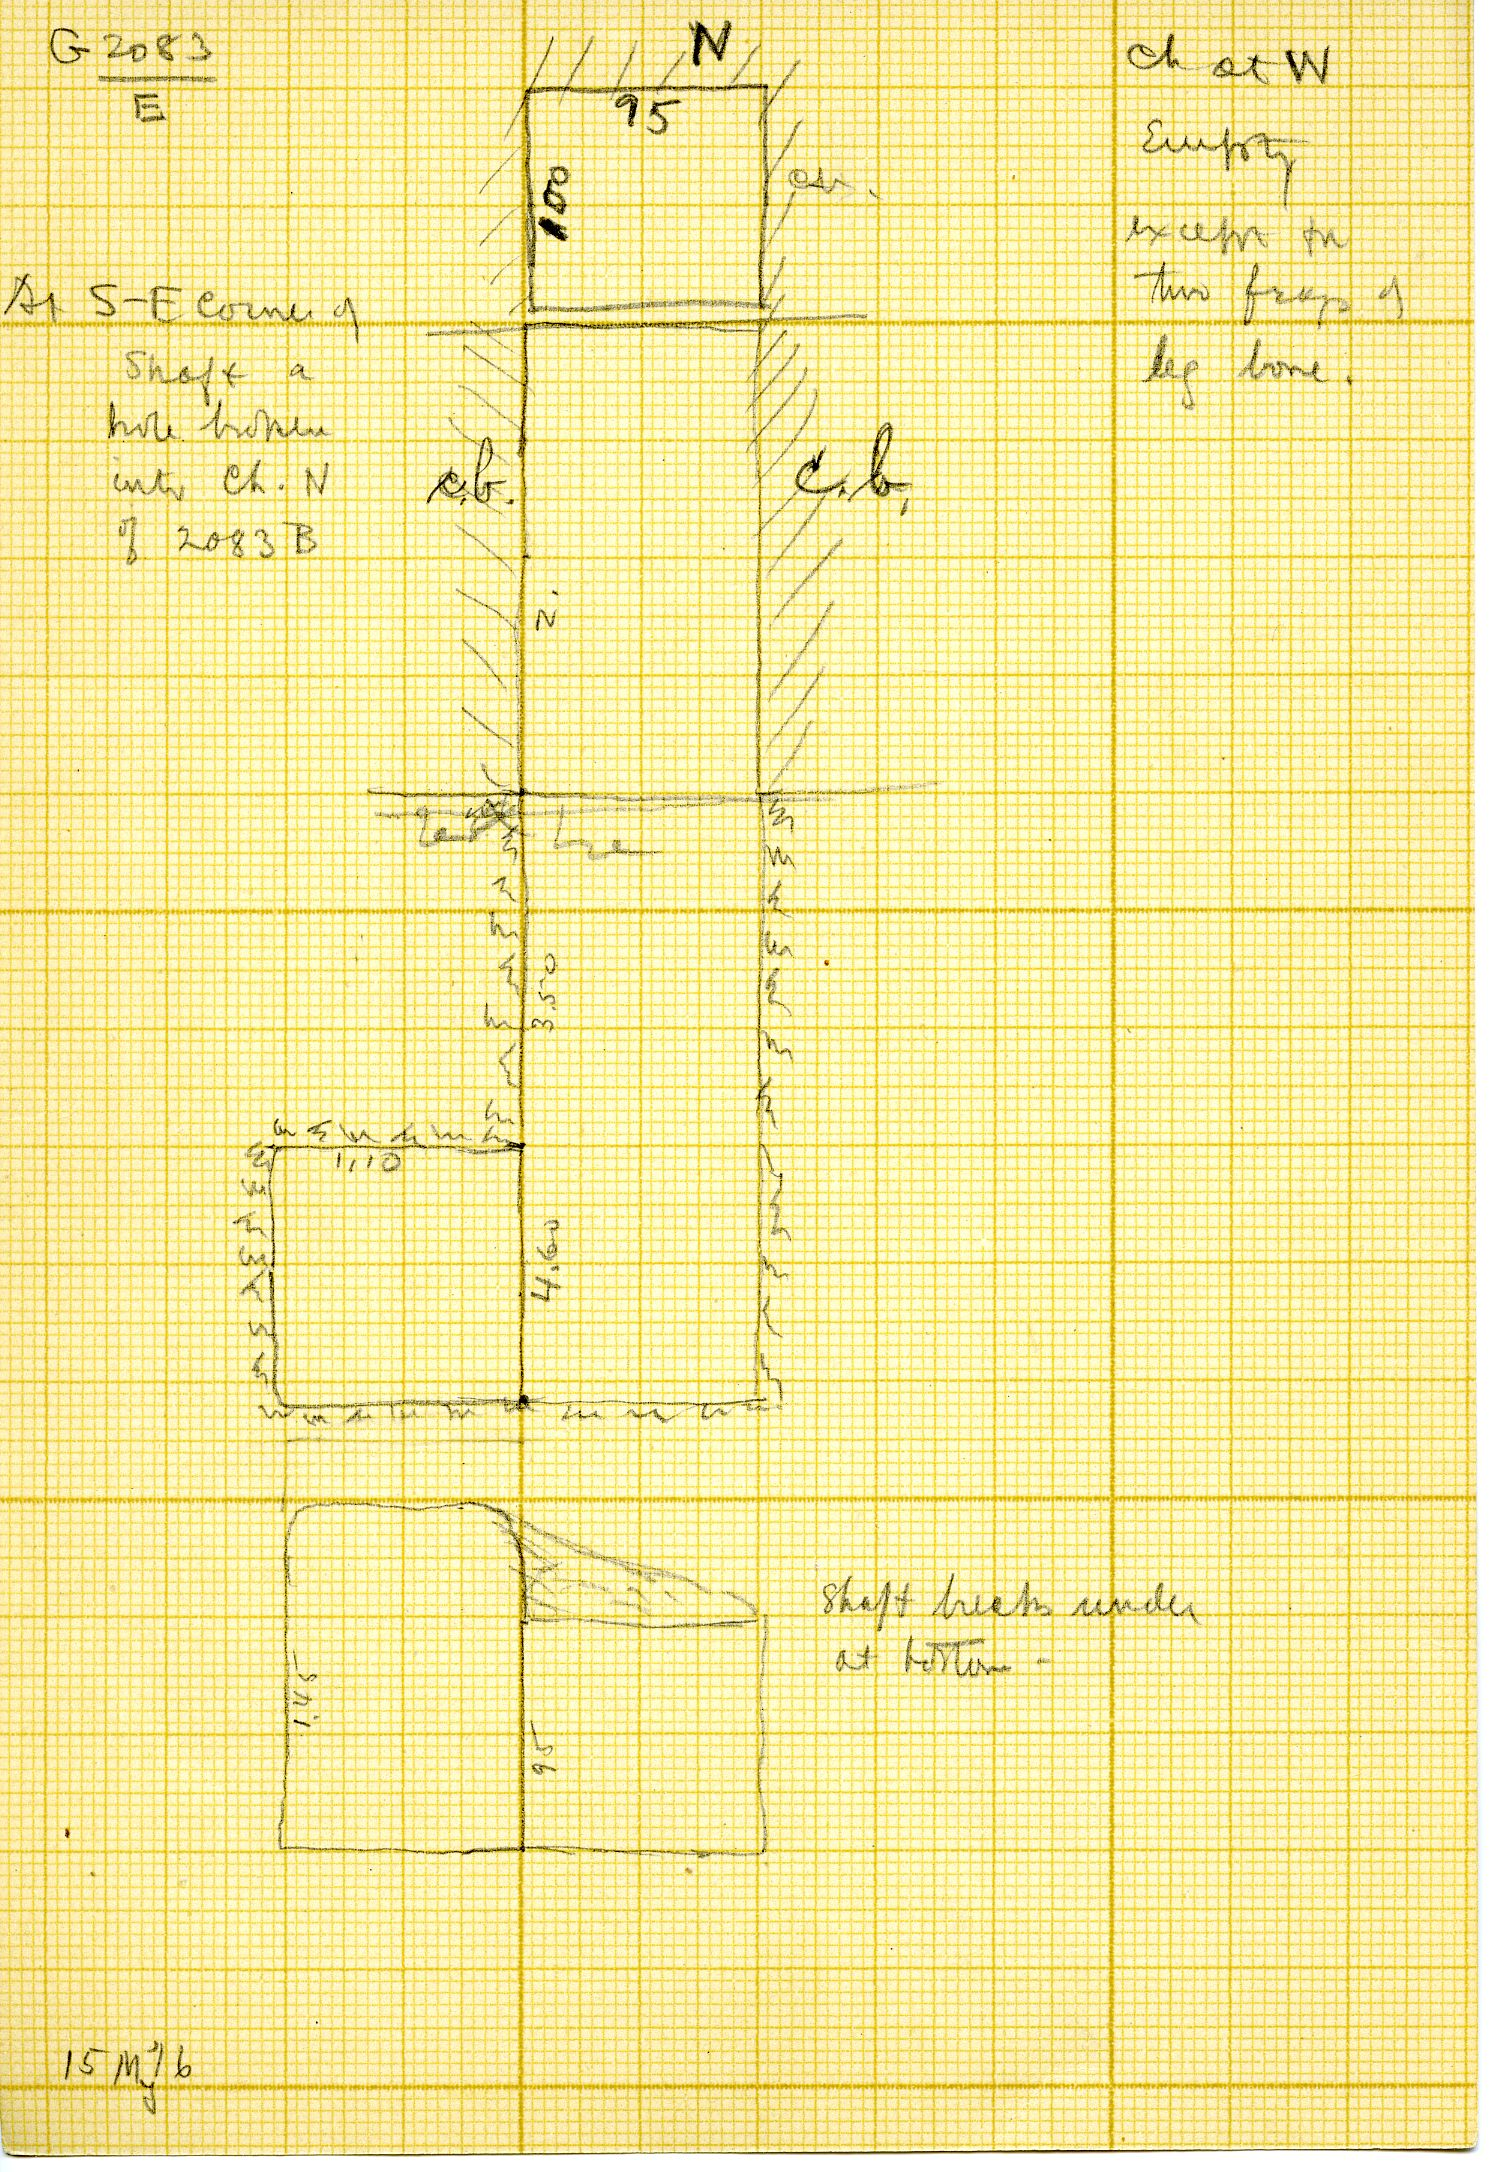 Maps and plans: G 3083, Shaft E